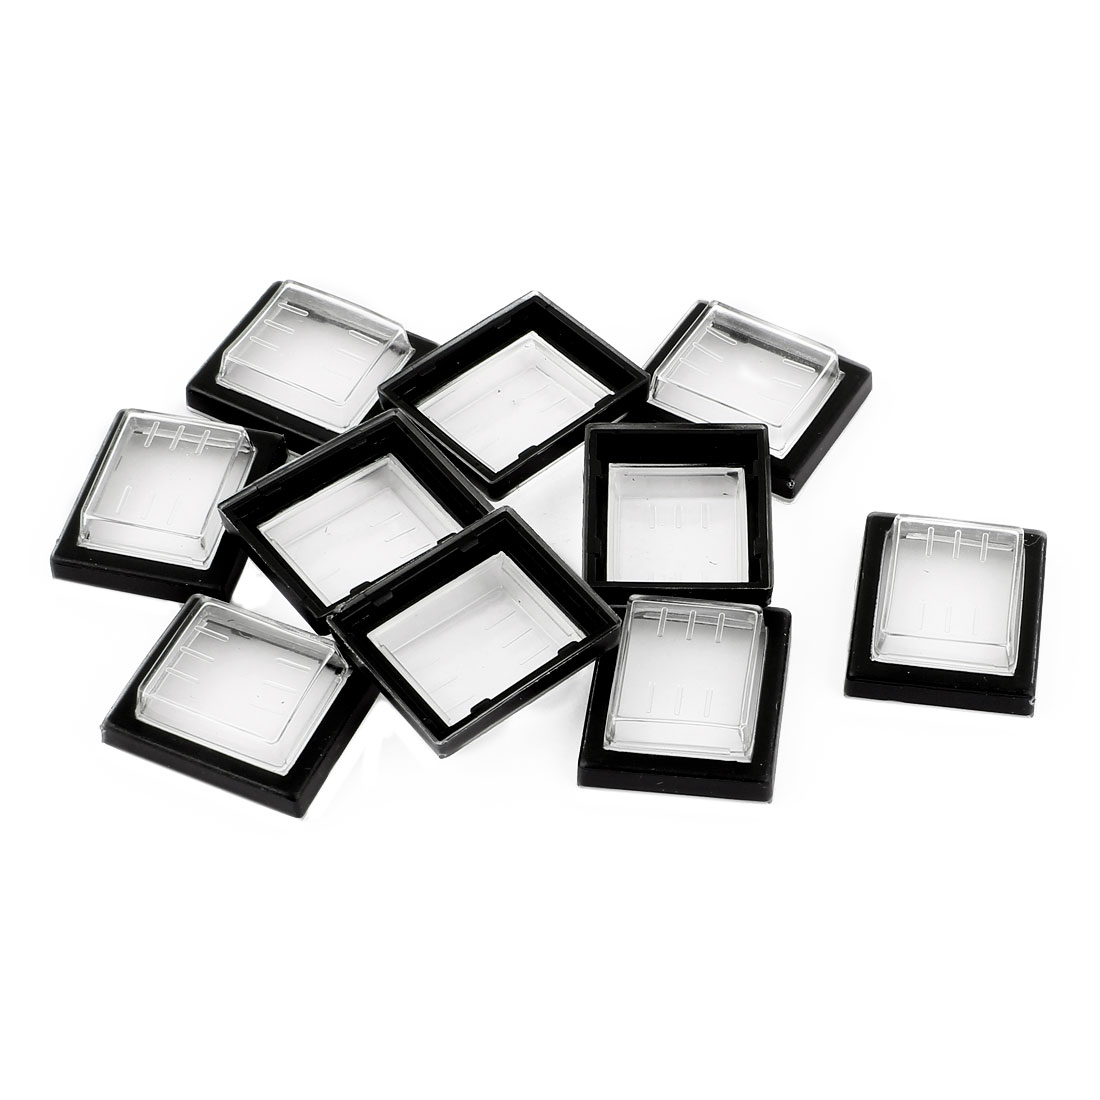 10 Pcs Clear Black Silicone Waterproof Rocker Switch Protect Cover Rectangle Cap